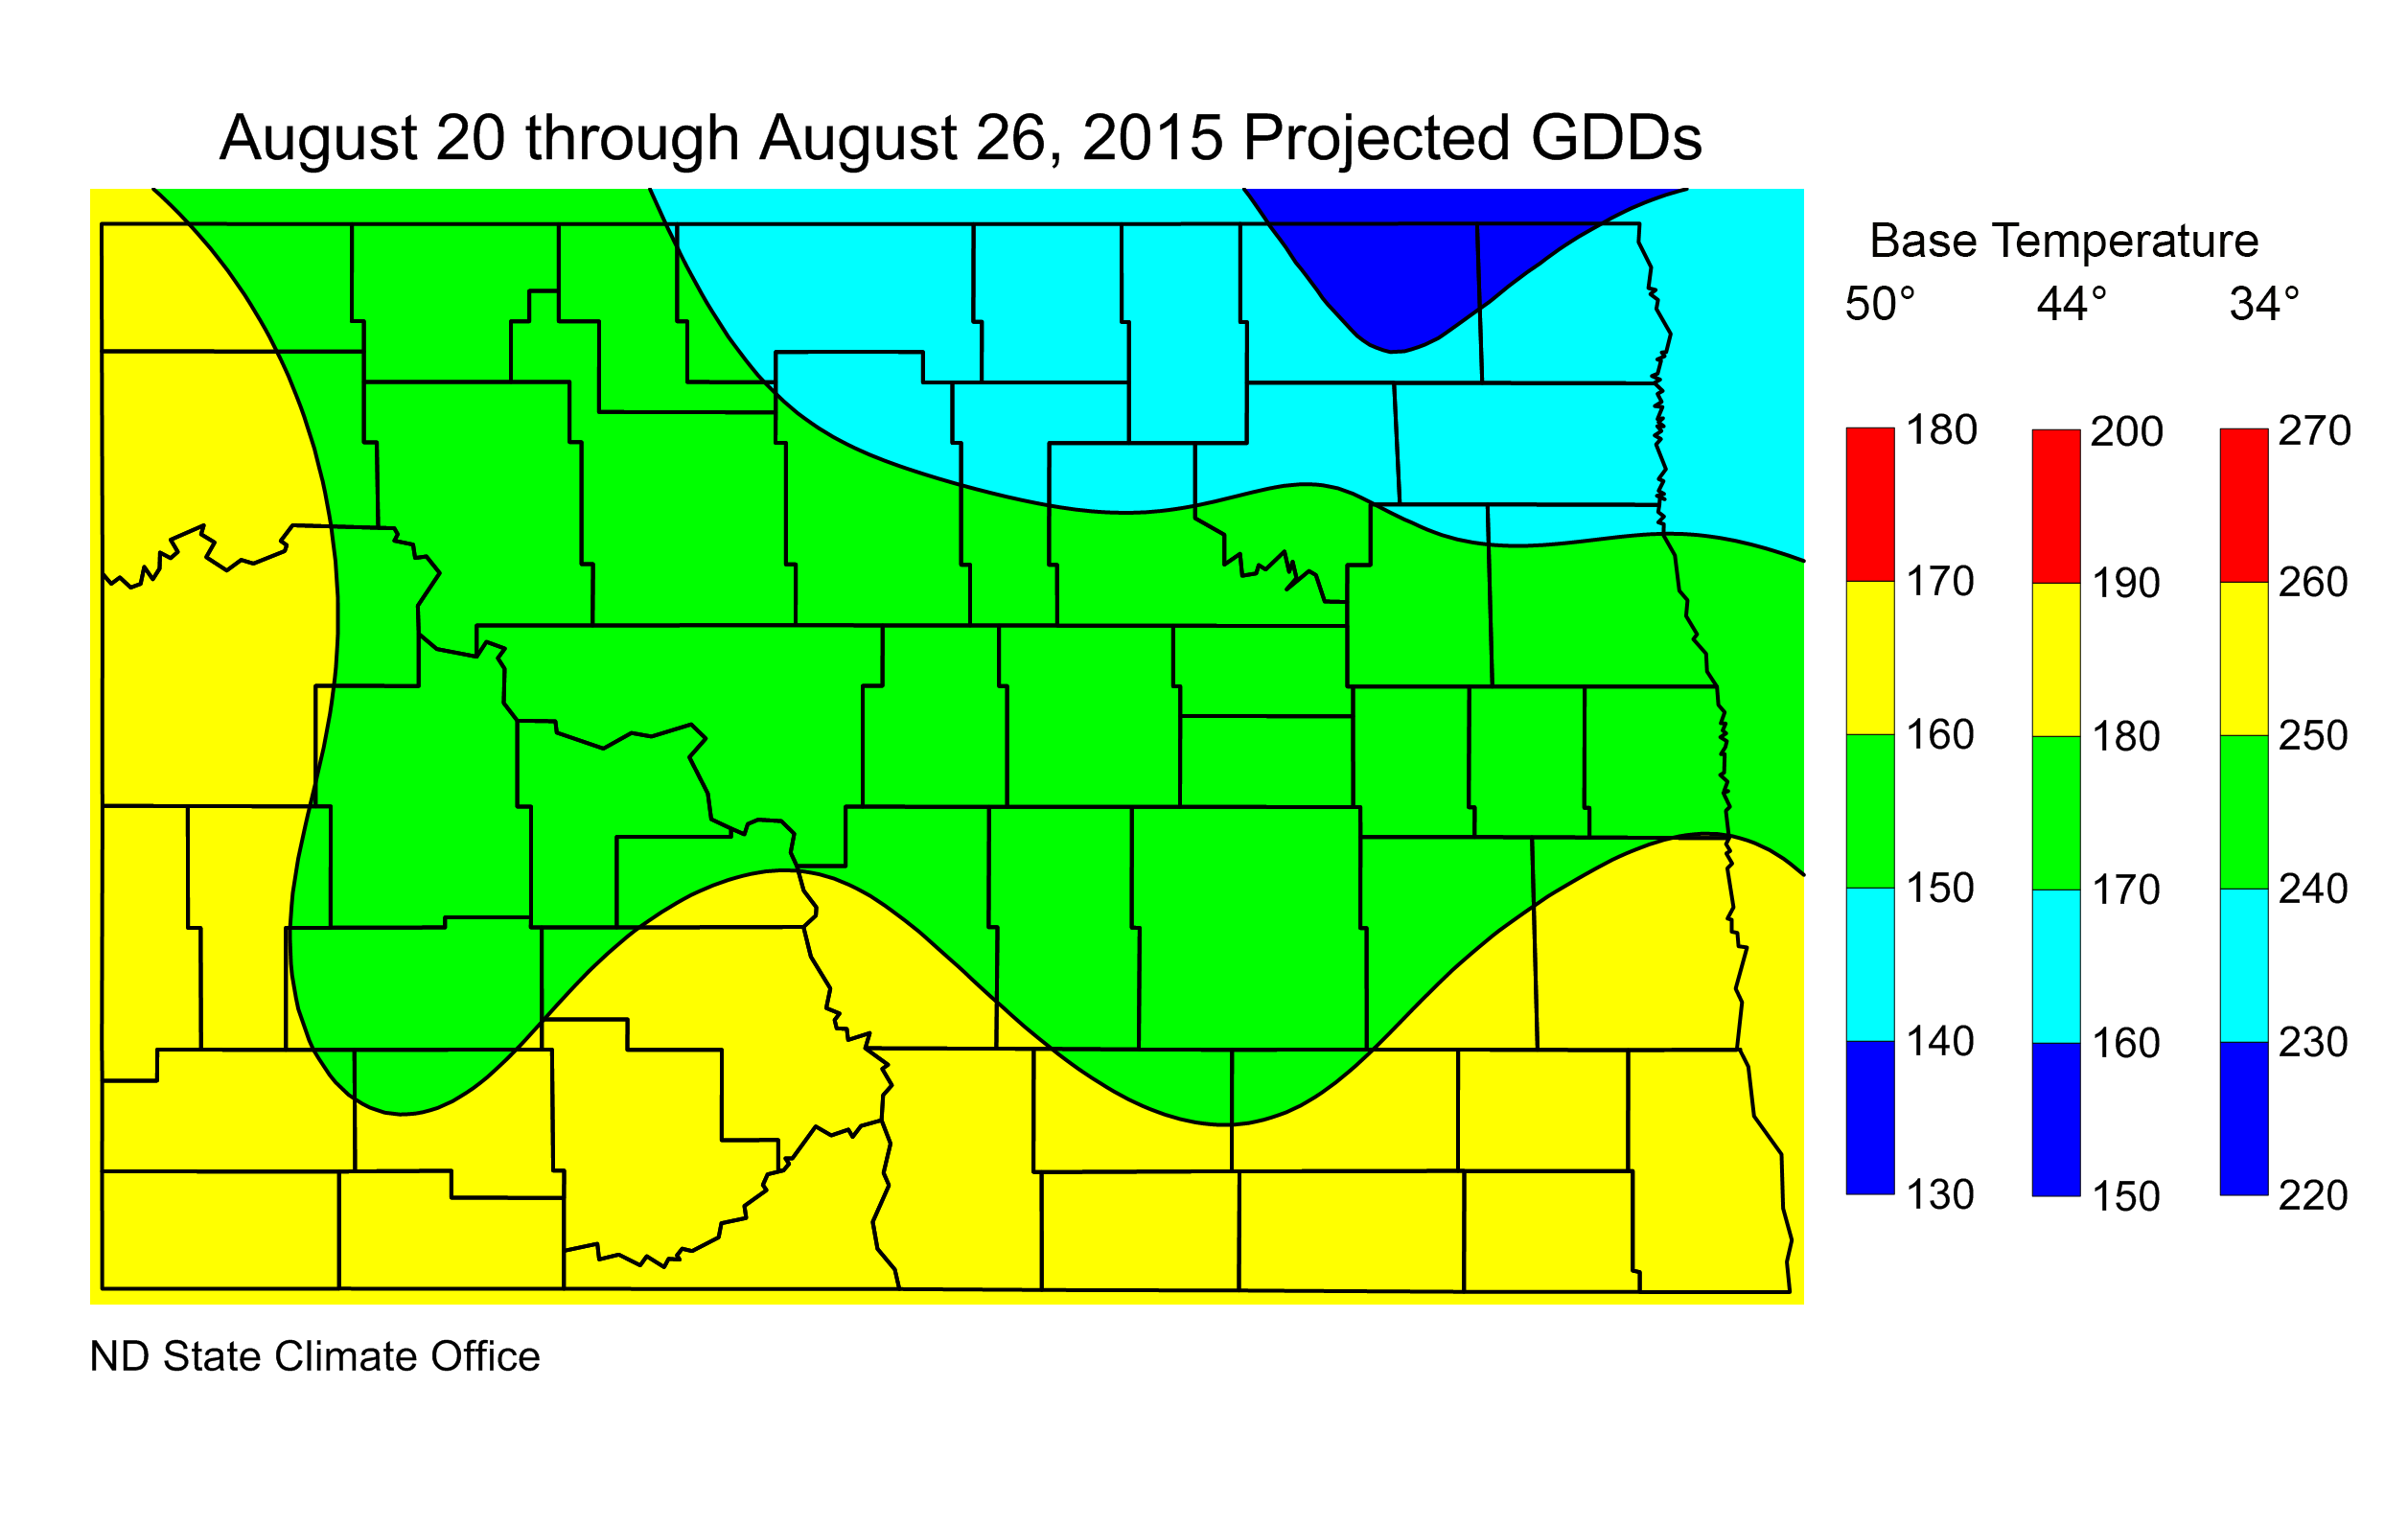 Figure 2. Projected Growing Degree Days from August 20 through August 26, 2015